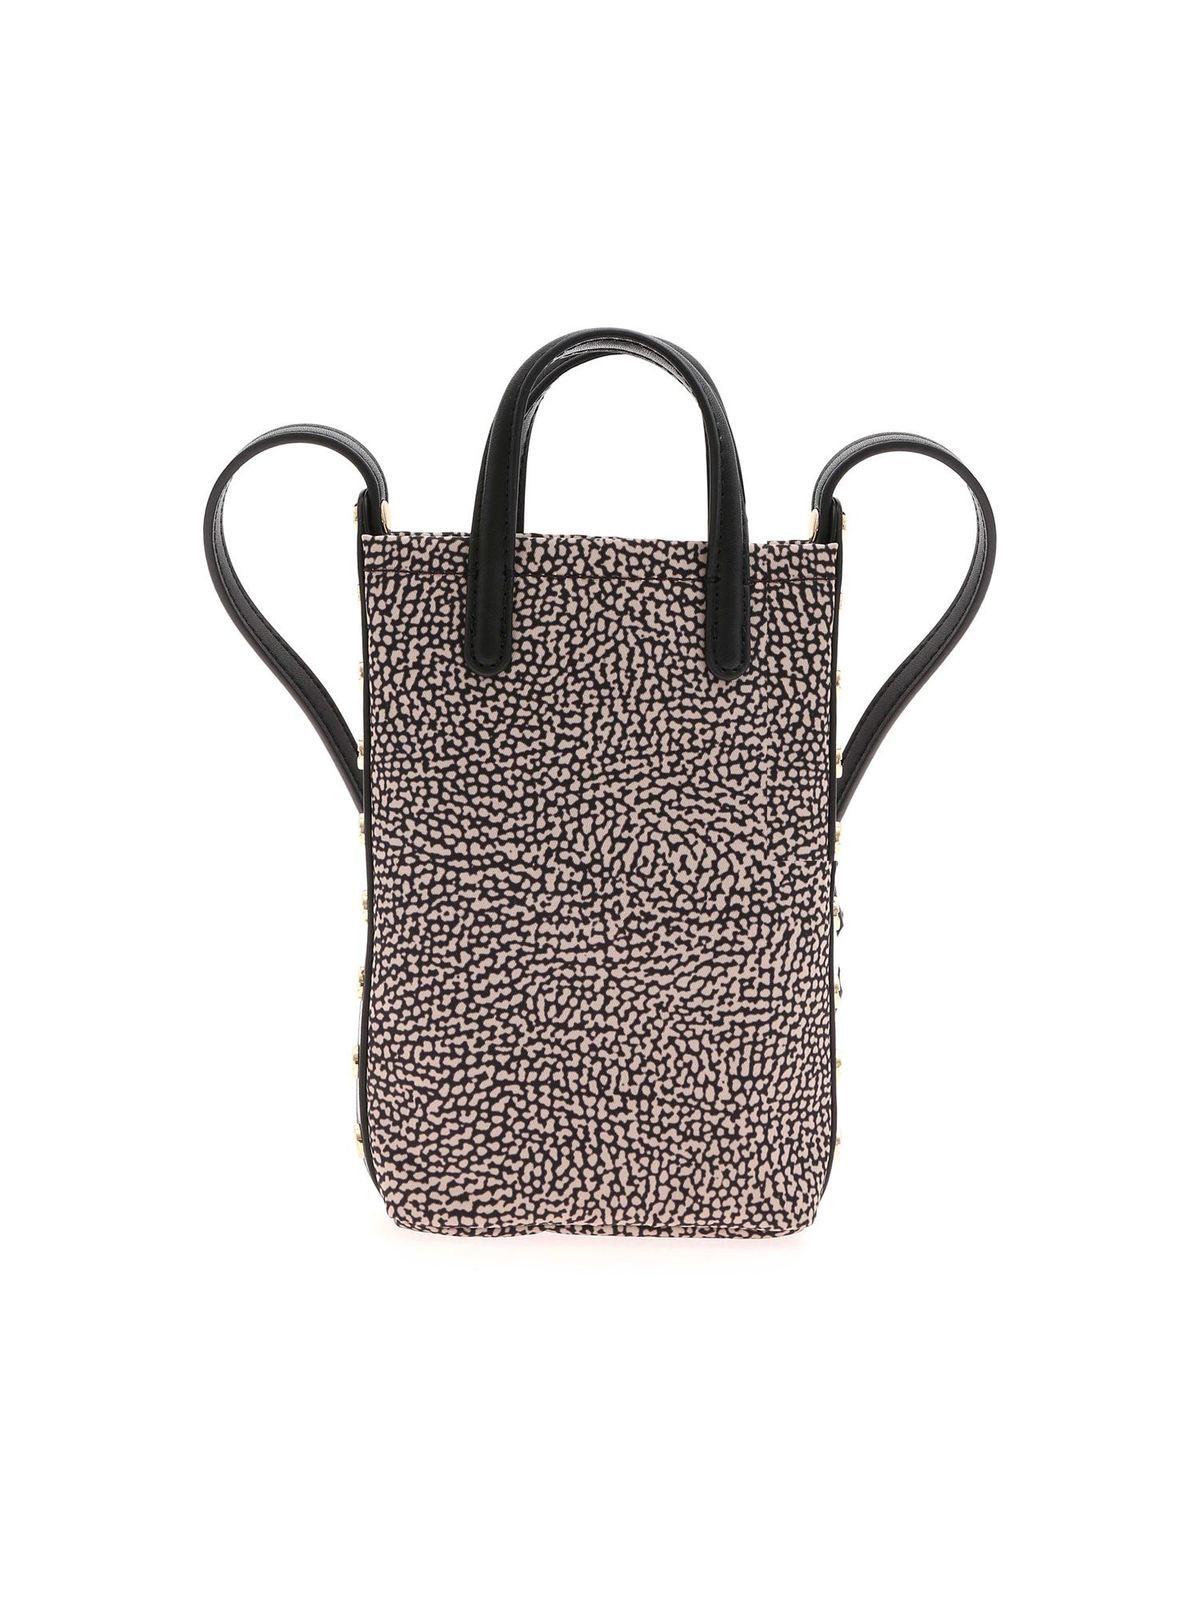 Borbonese OP PRINT SHOULDER BAG IN BROWN